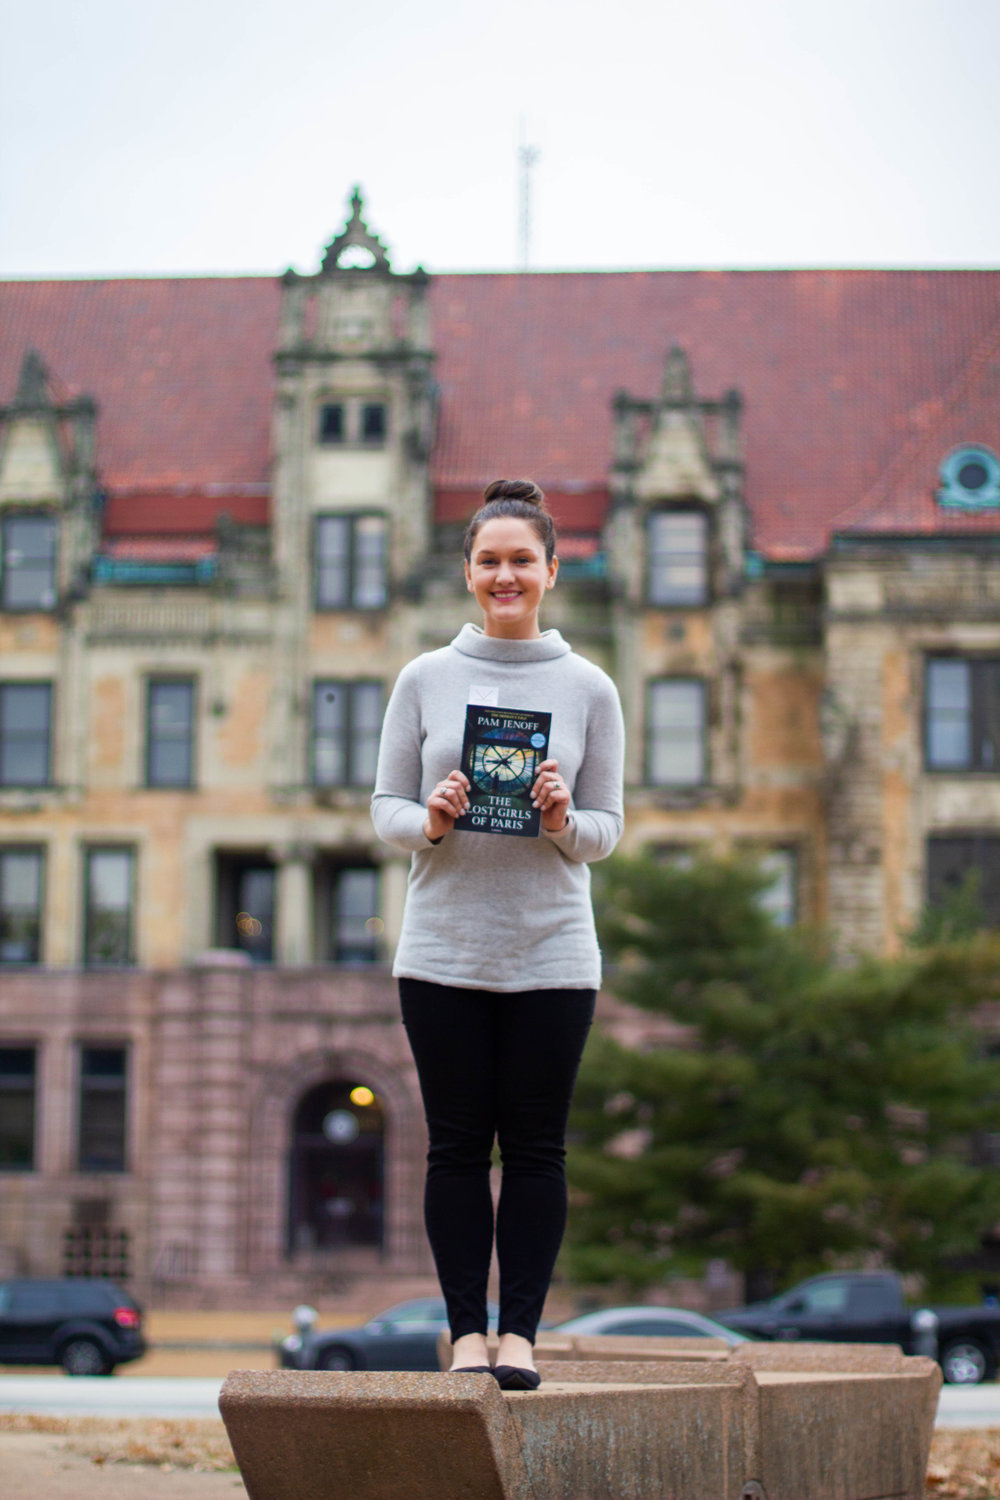 Reading The Lost Girls of Paris by Pam Jenoff at City Hall in St. Louis, MO